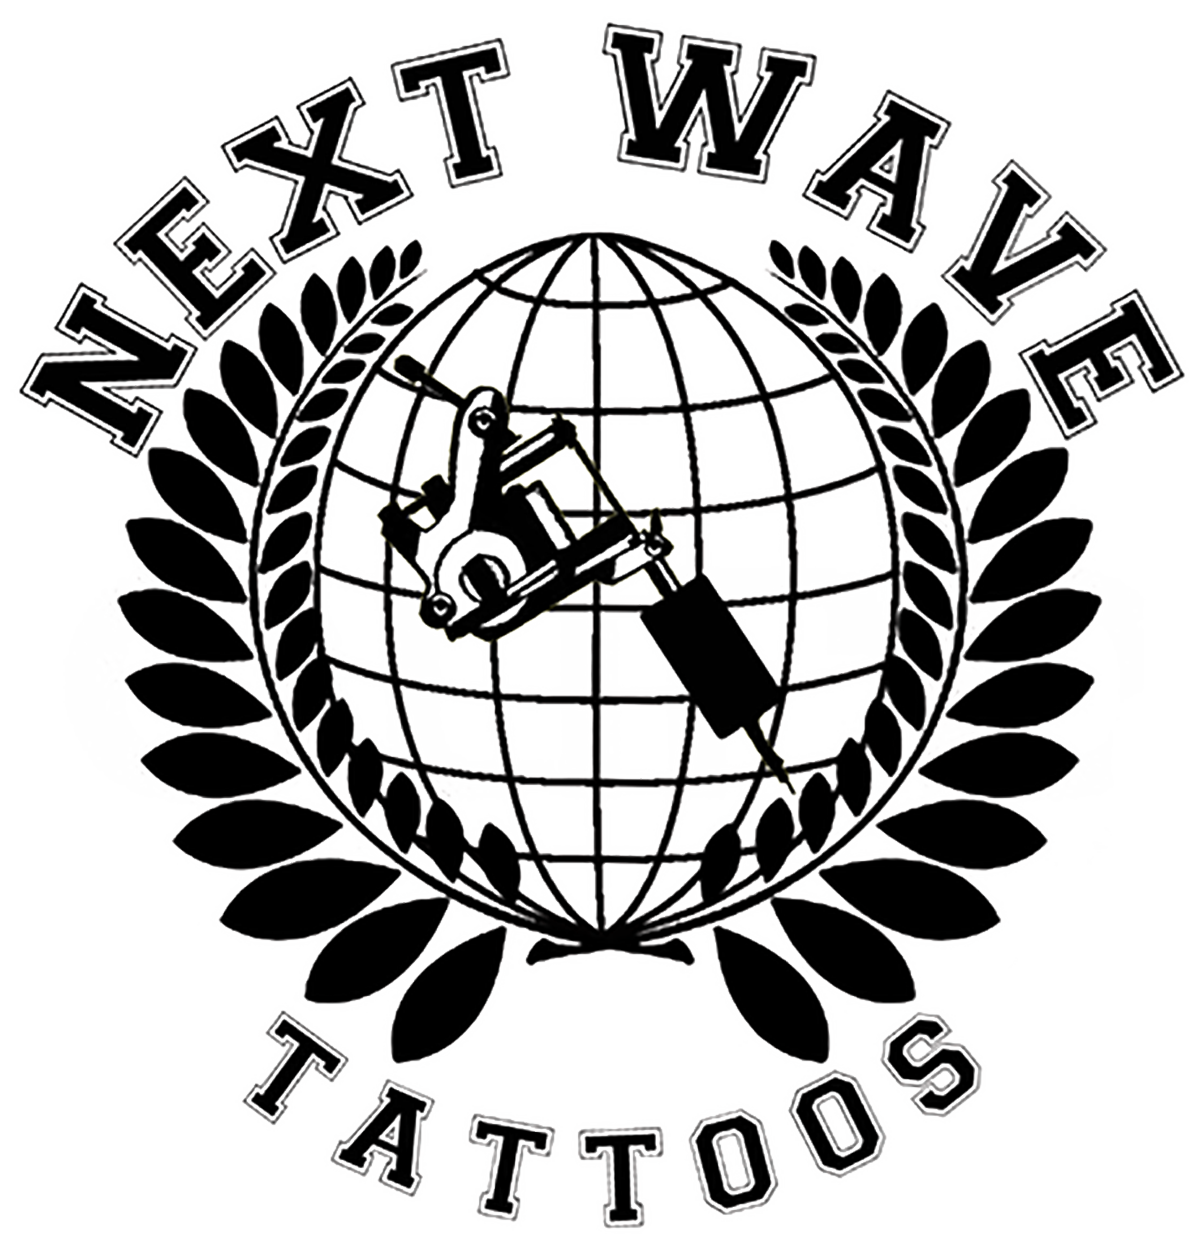 Next wave tattoo logo all black big